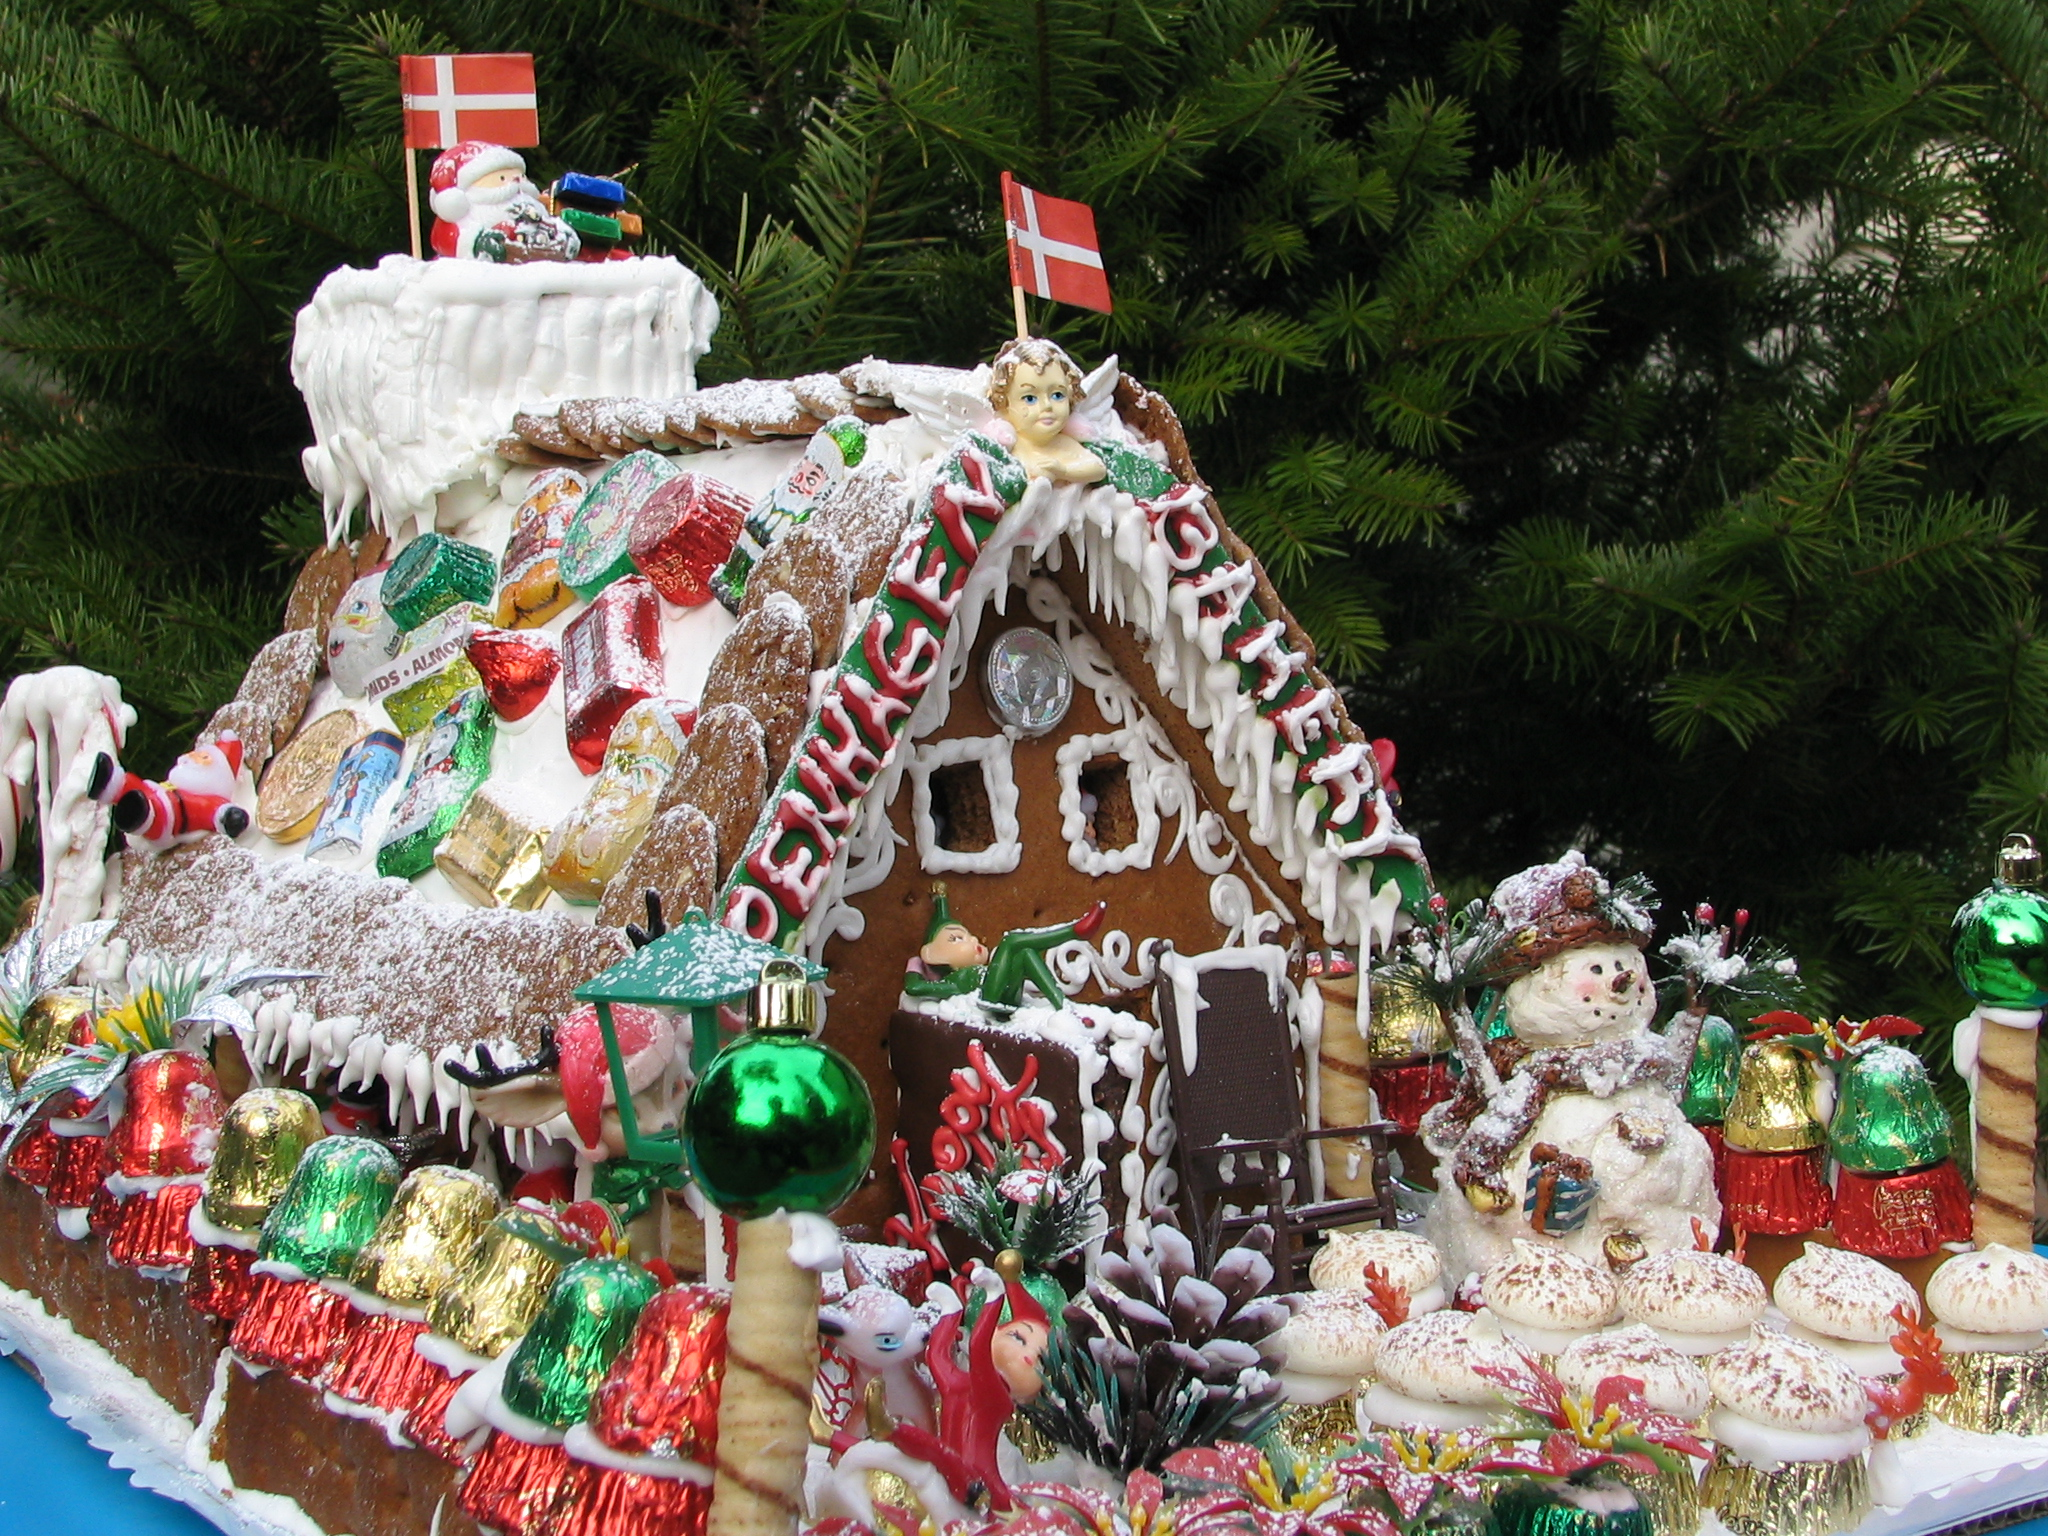 File:Gingerbread house decorated with candy.jpg - Wikimedia Commons